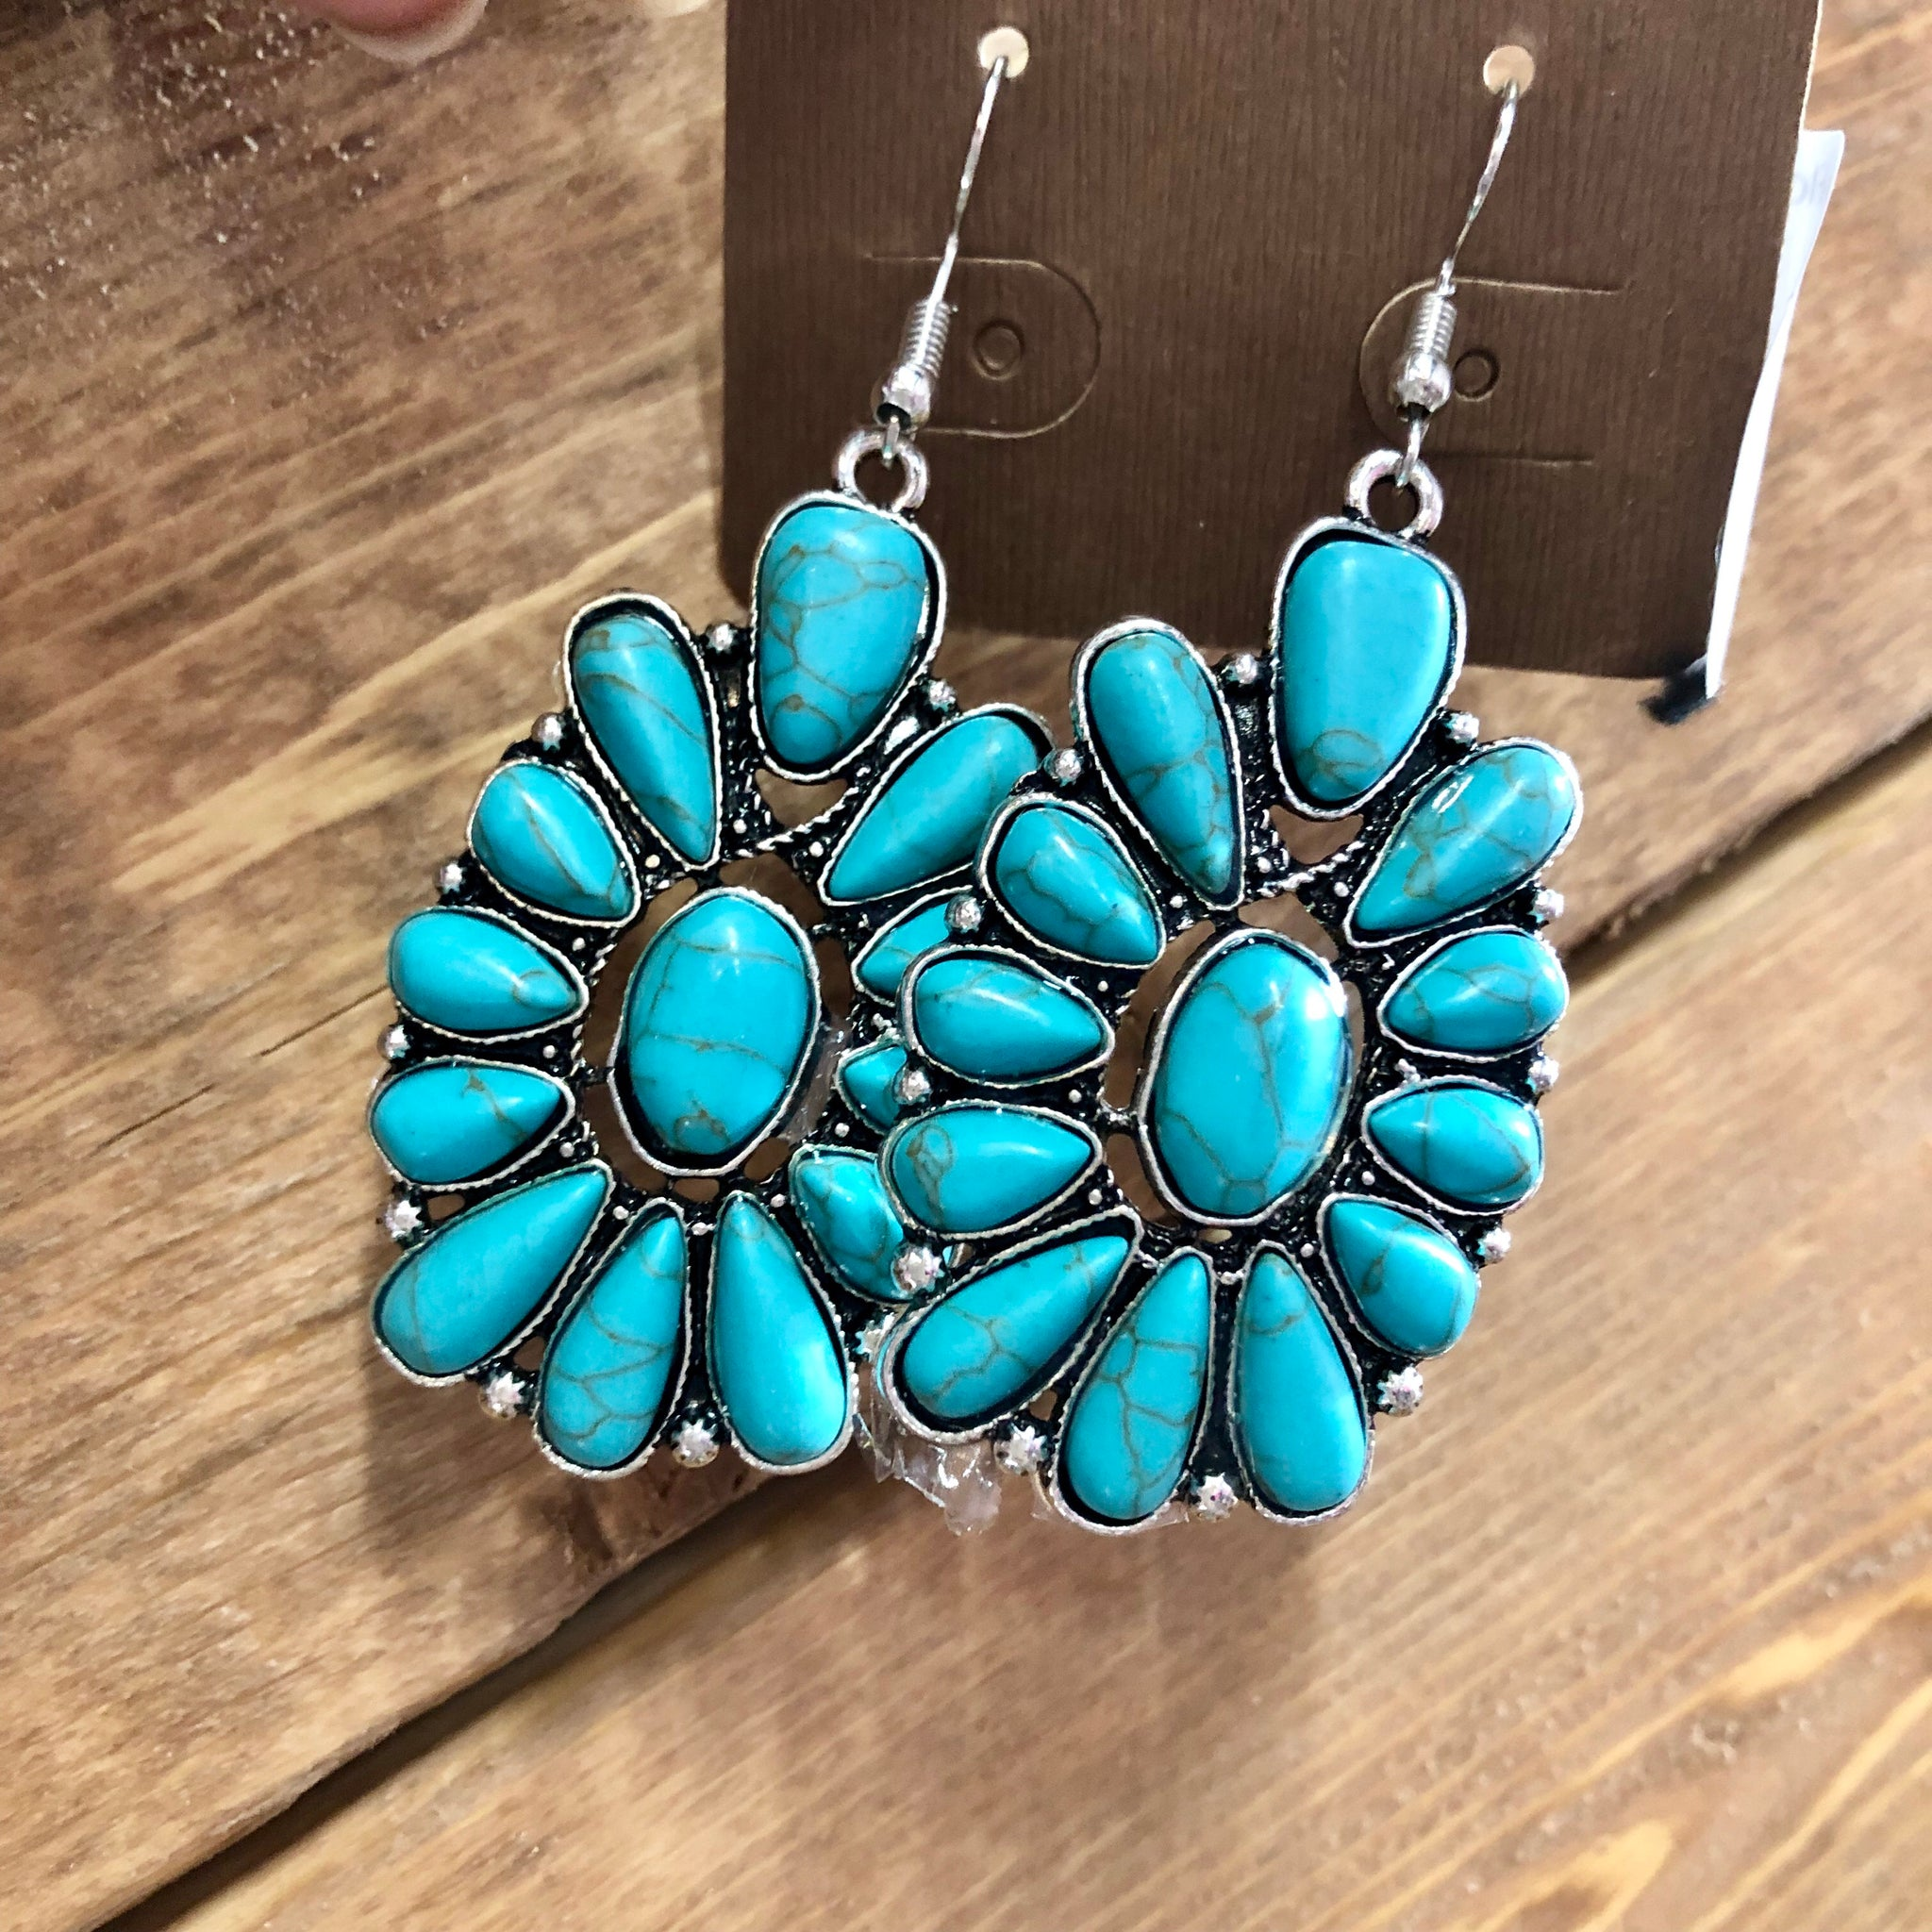 Flower Stone Squash Earrings- 3 COLORS!